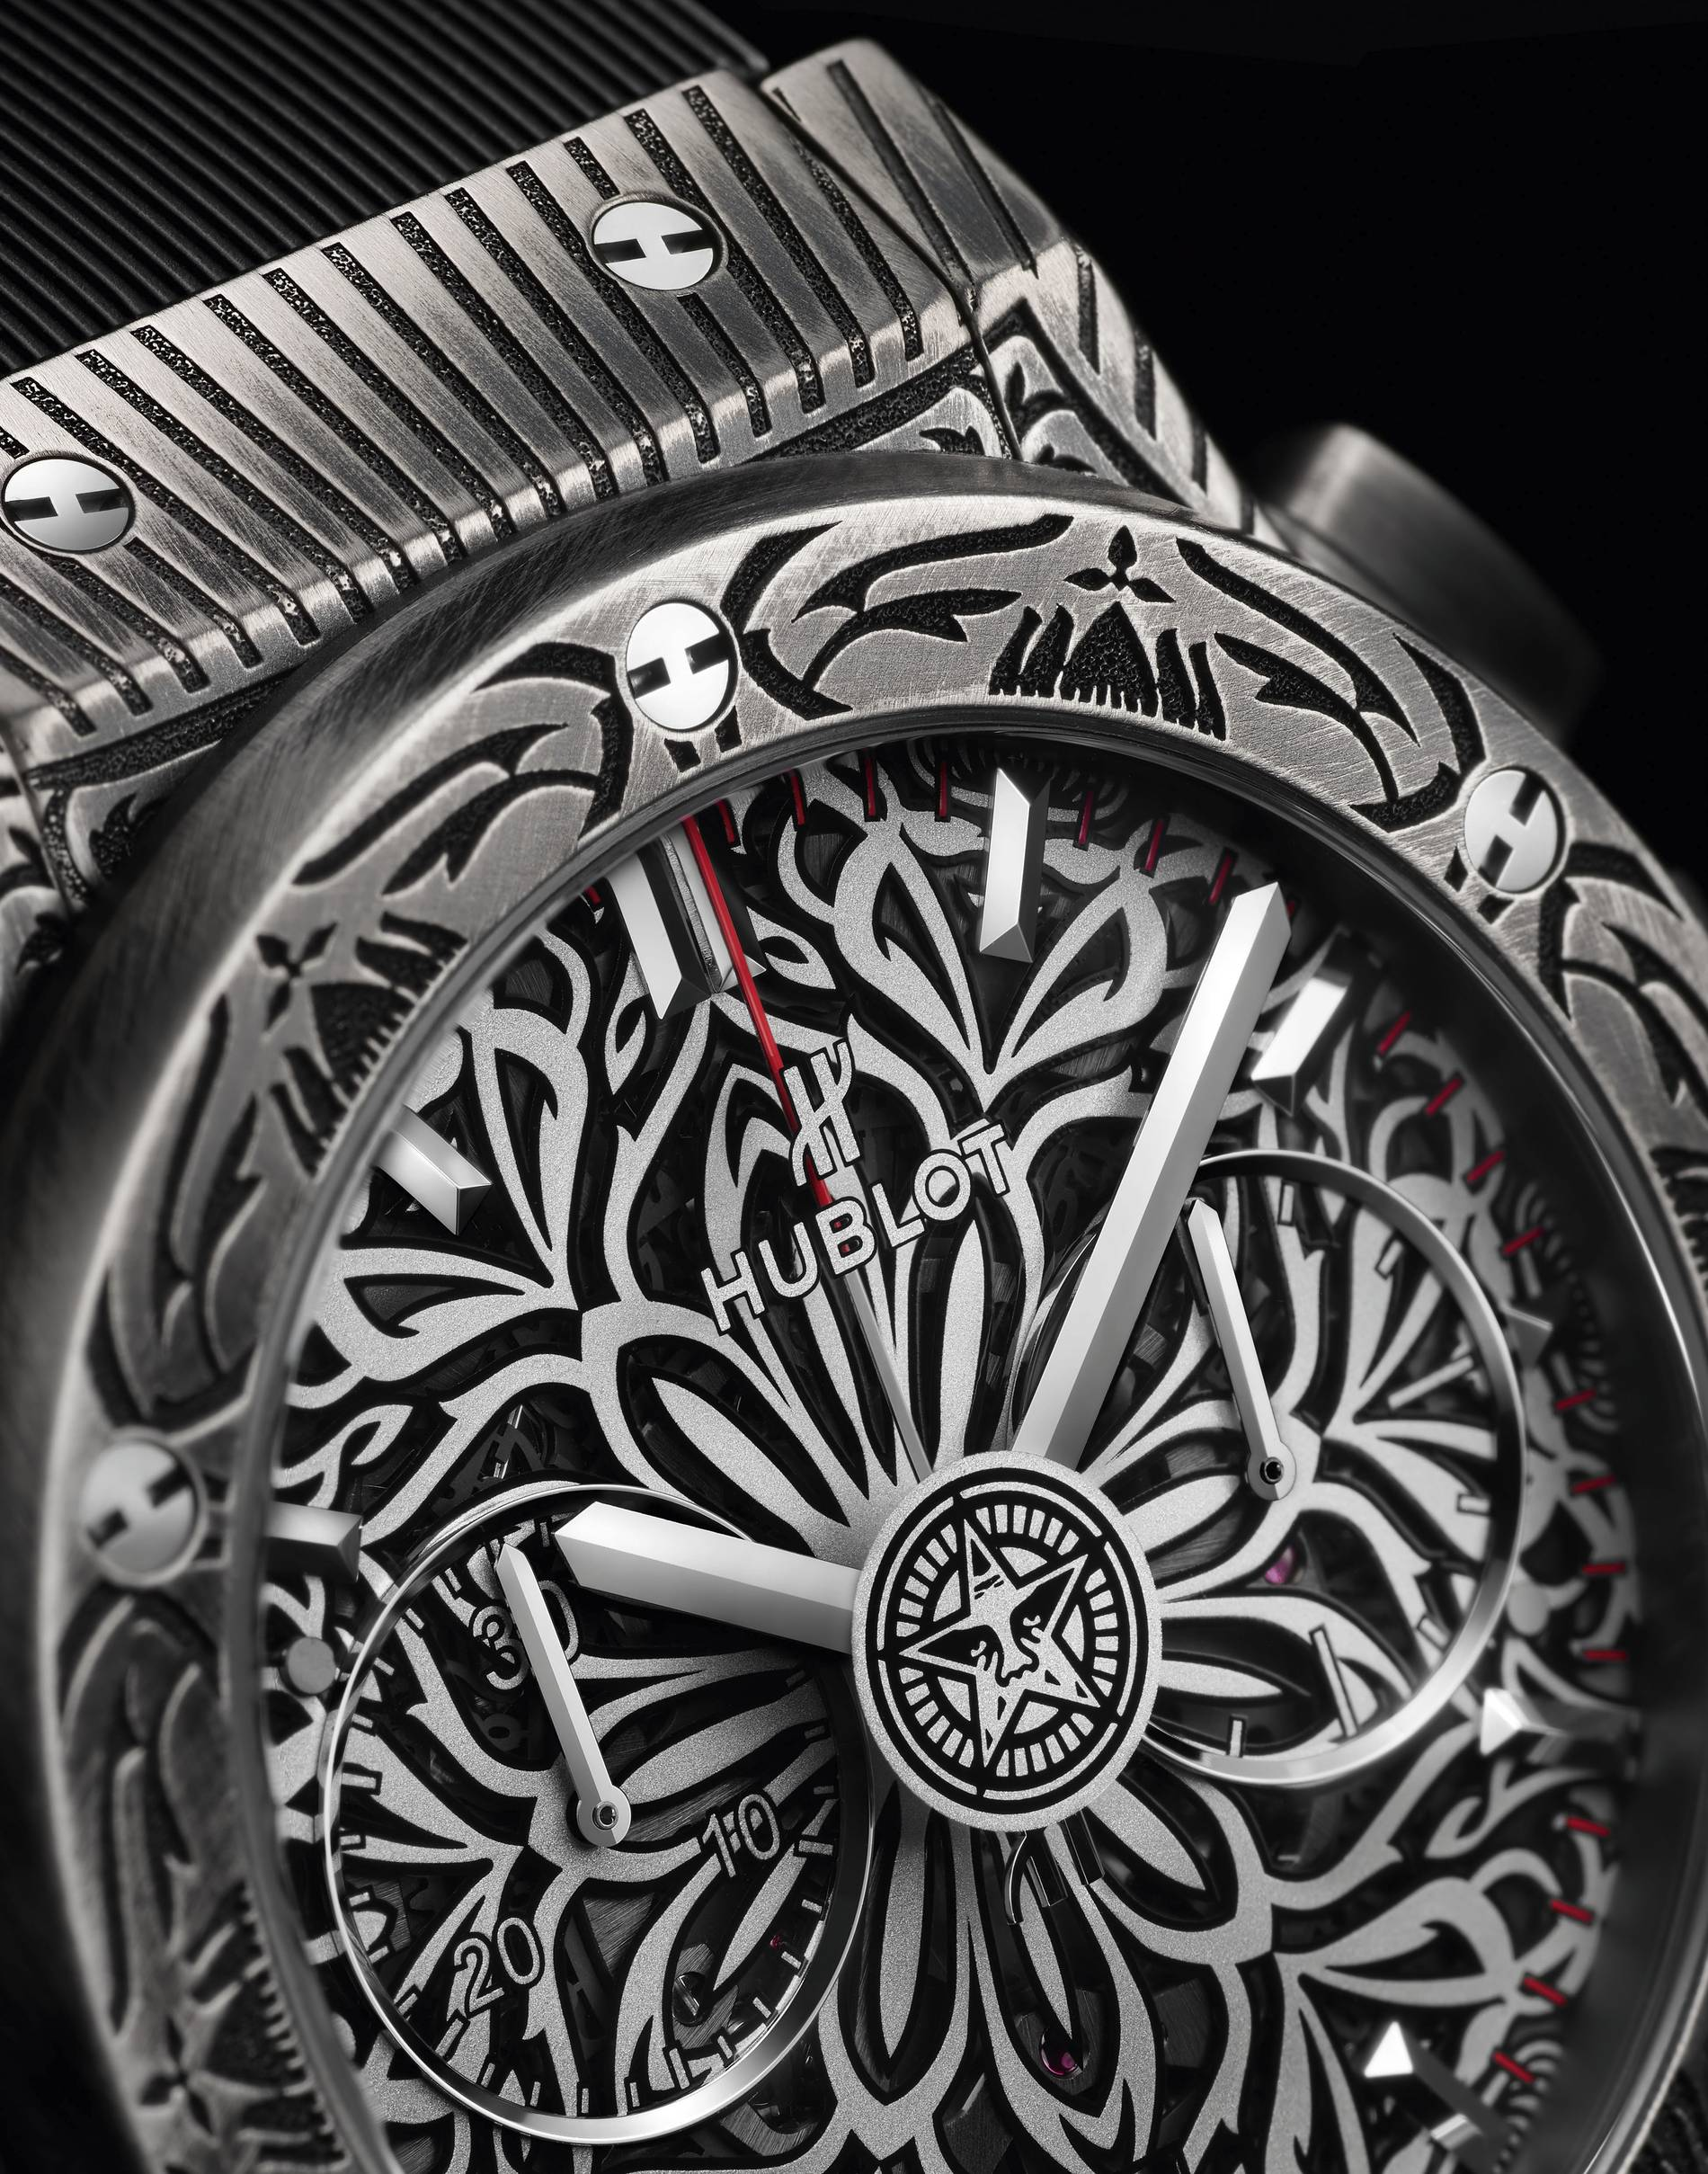 Hublot Shepard Fairey watch collaboration close up